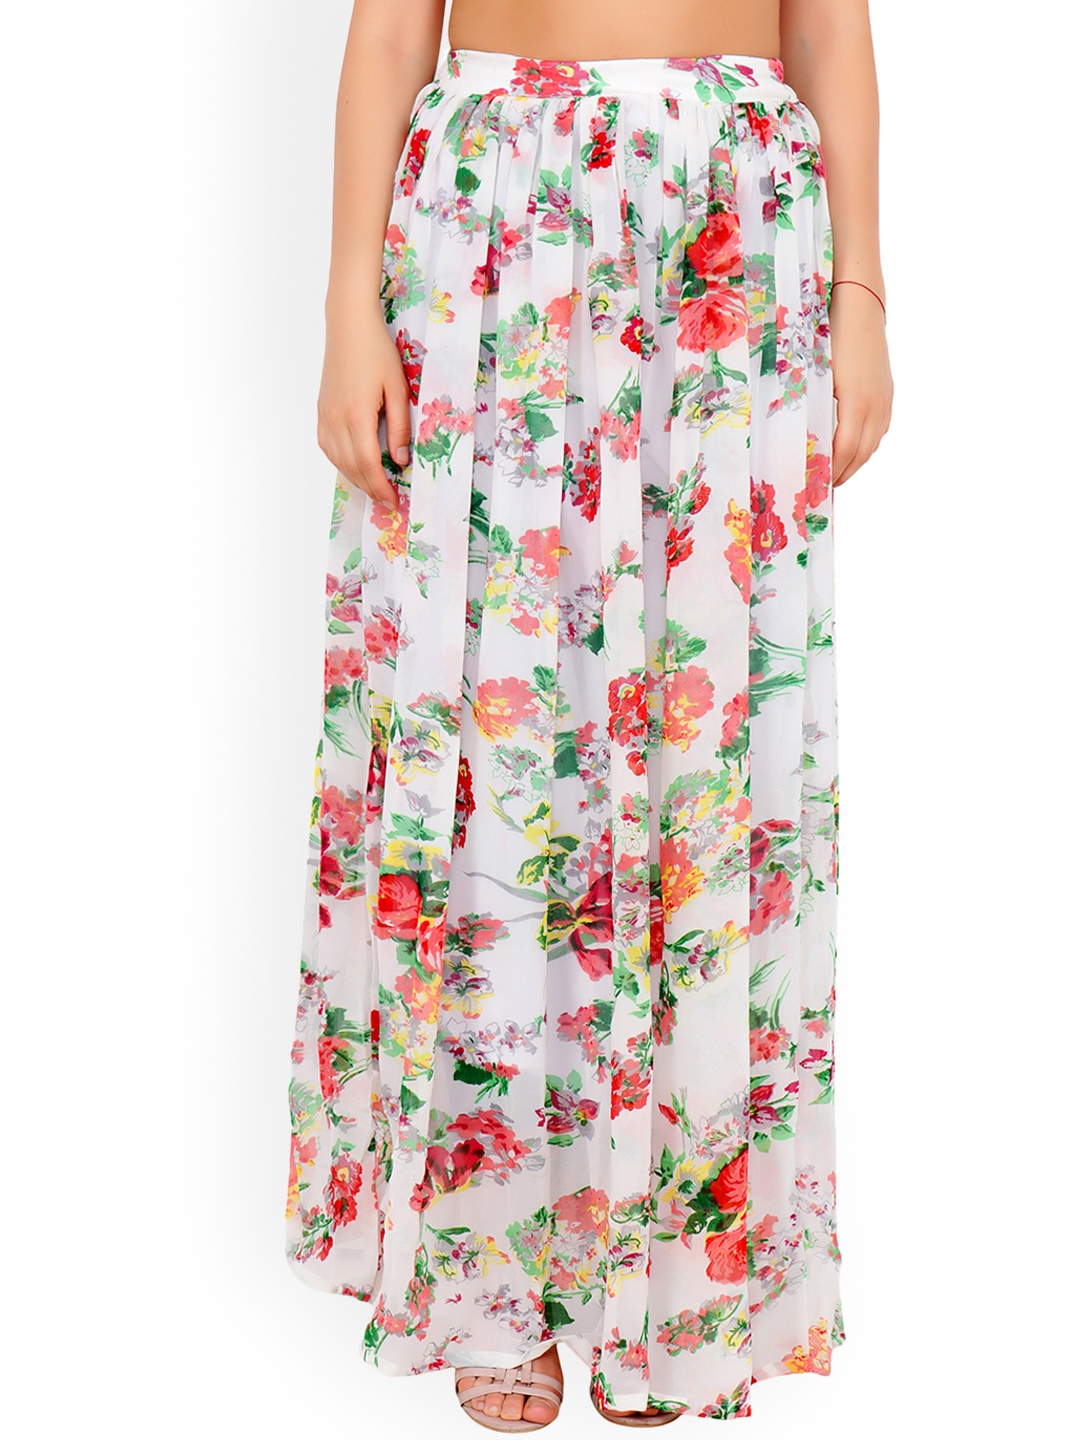 62093e9f1d90 Buy Cation Women White   Red Floral Print Flared Maxi Skirt - Skirts ...